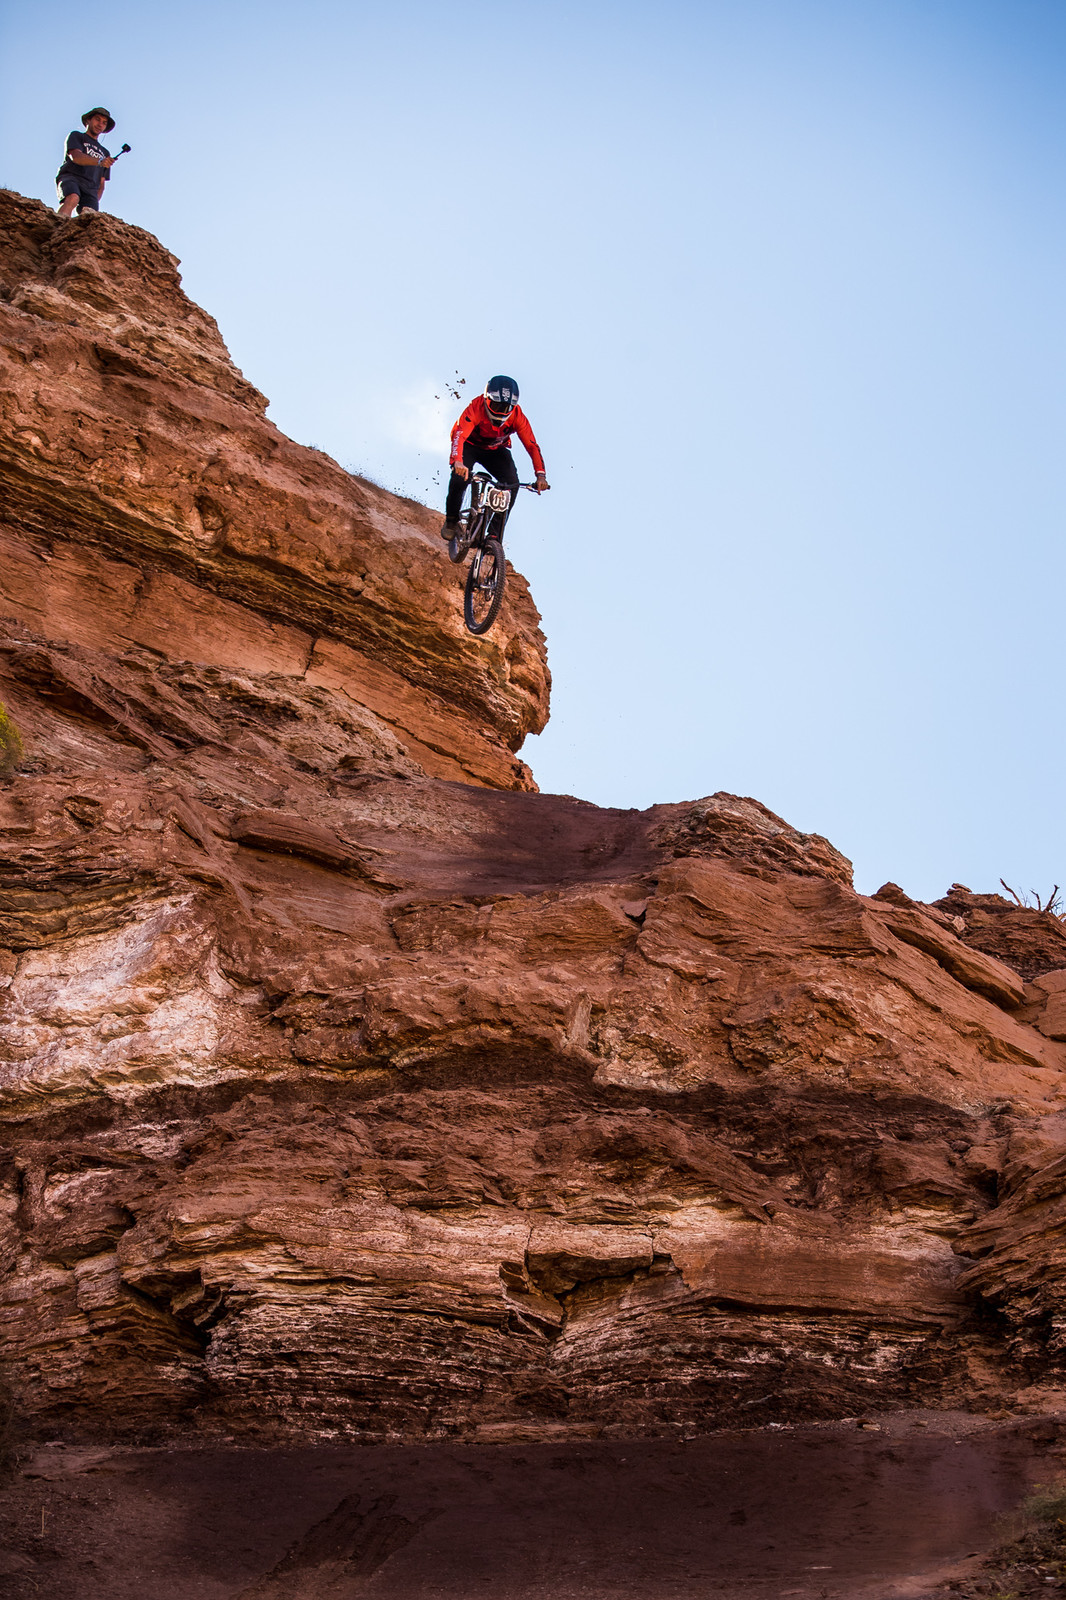 I Never Ride Park - 2019 Red Bull Rampage Finals Photos by @maddogboris - Mountain Biking Pictures - Vital MTB